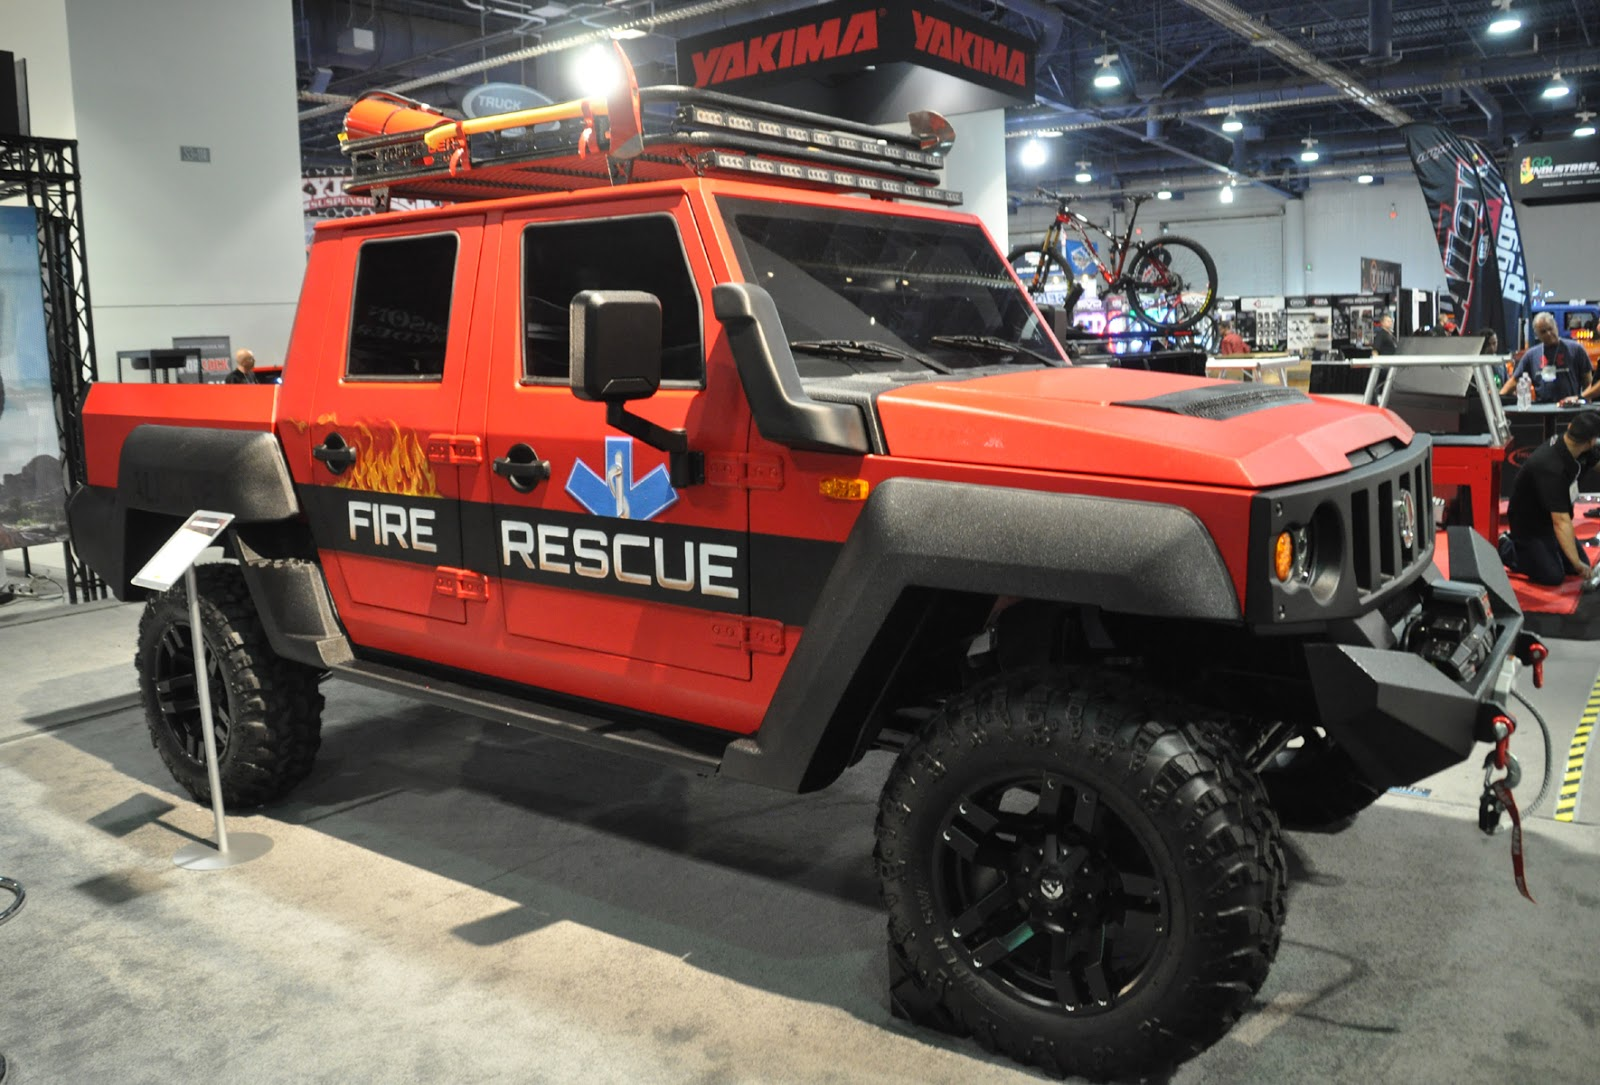 Just A Car Guy: This Search And Rescue Vehicle Is Covered